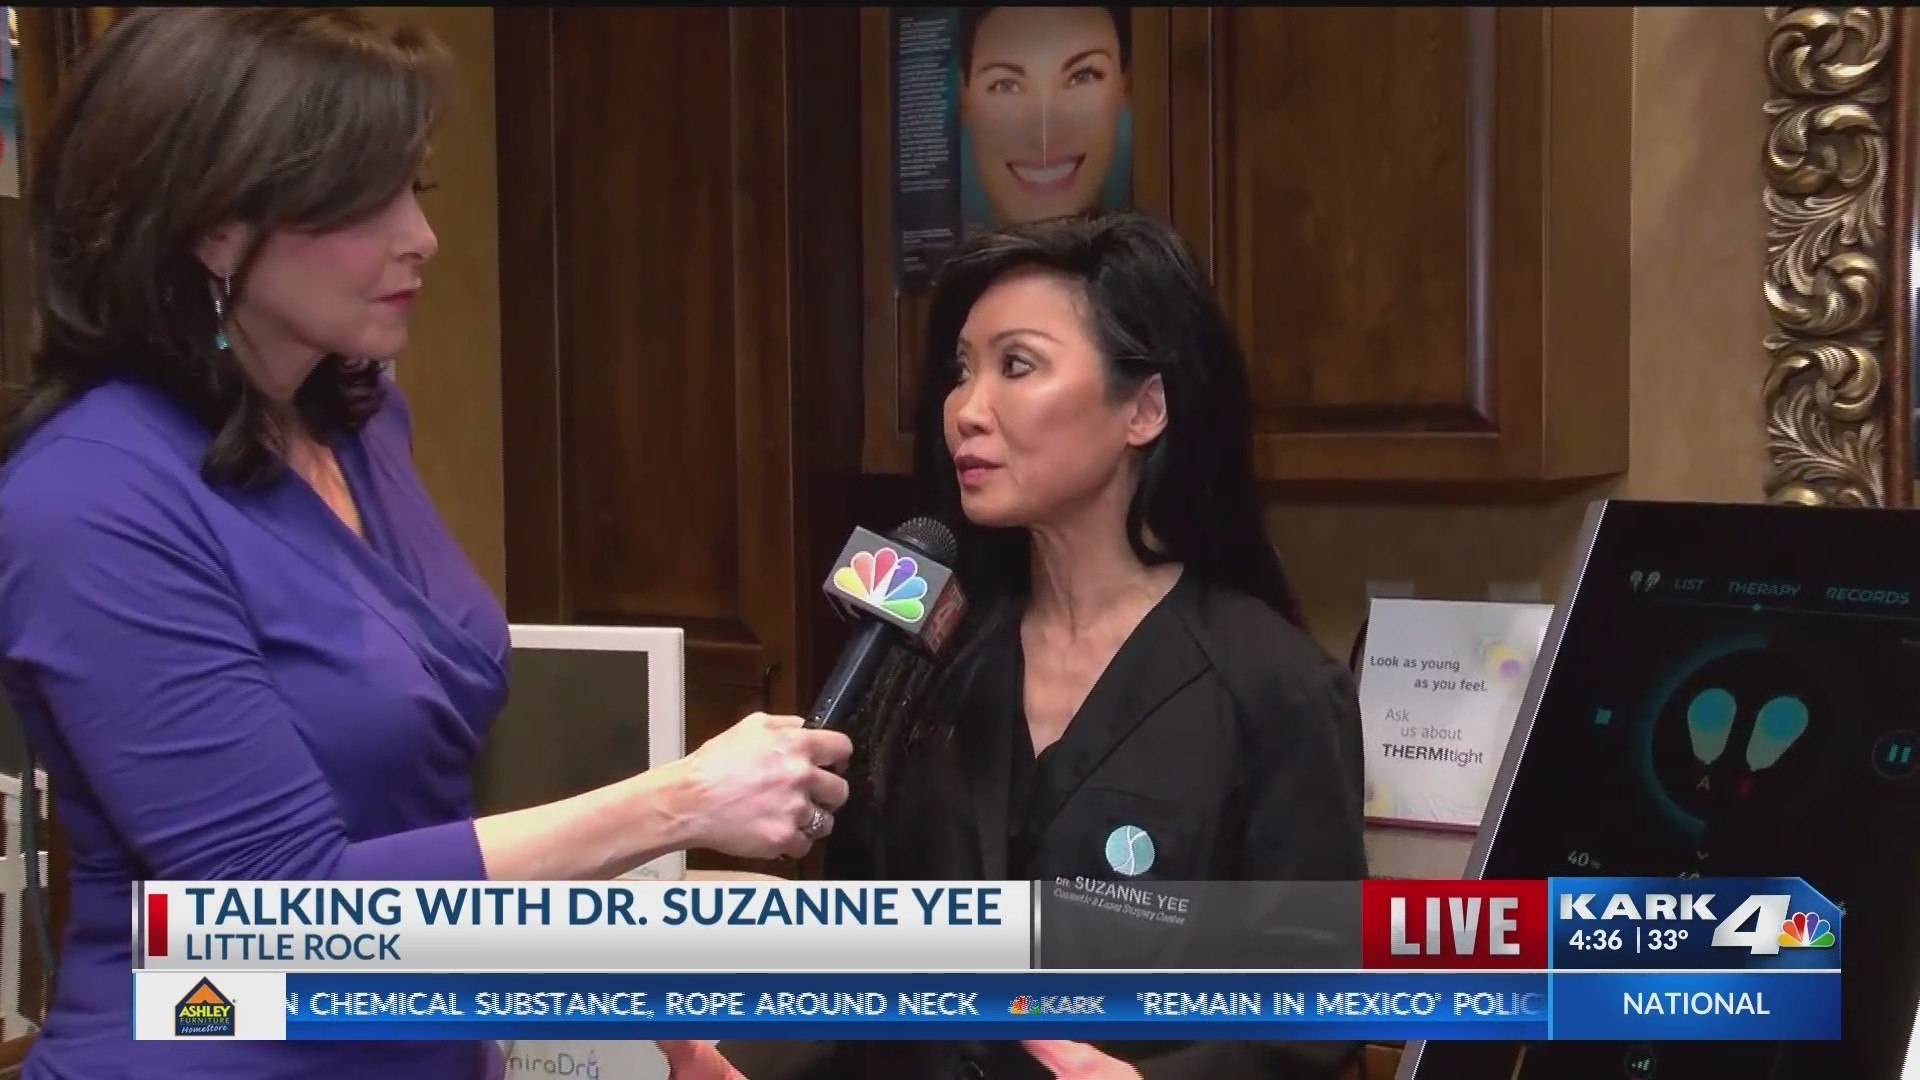 Live_with_Lisa_Fischer__Dr__Suzanne_Yee__9_20190130232657